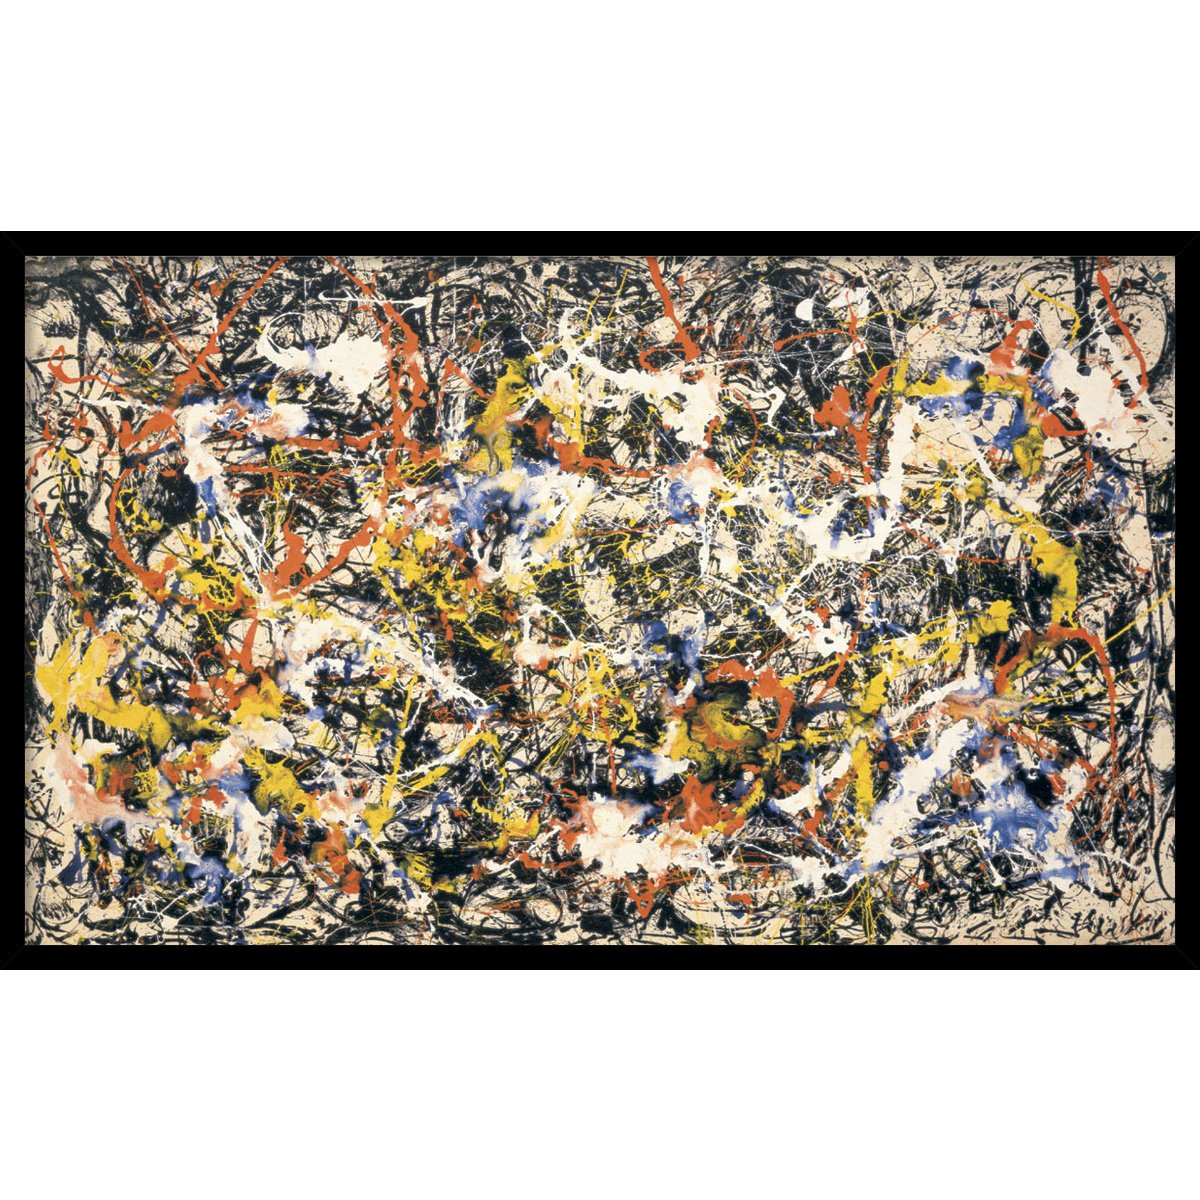 Framed Art Print, 'Convergence' by Jackson Pollock: Outer Size 37 x 23'' by Amanti Art